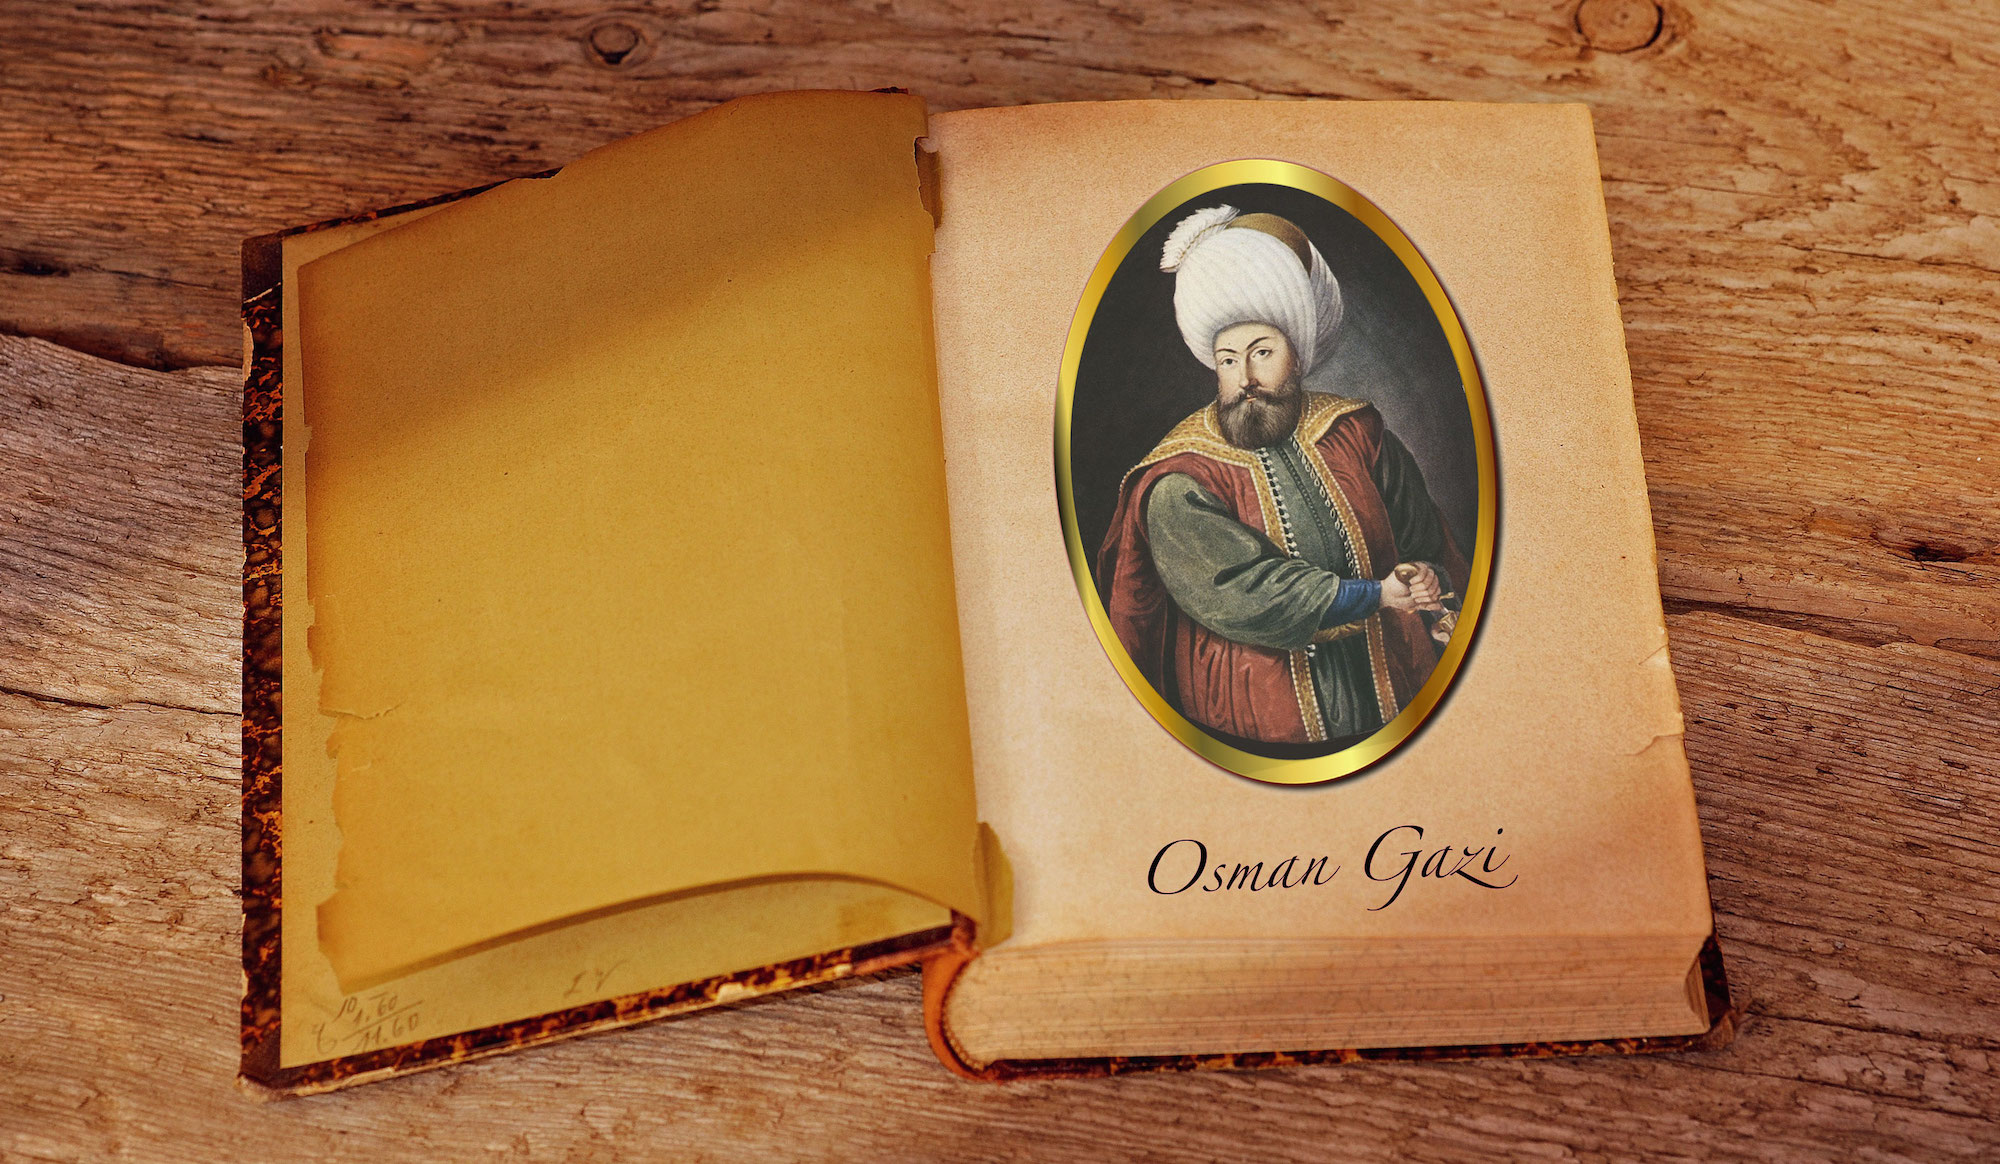 Who is Osman Gazi Bey?